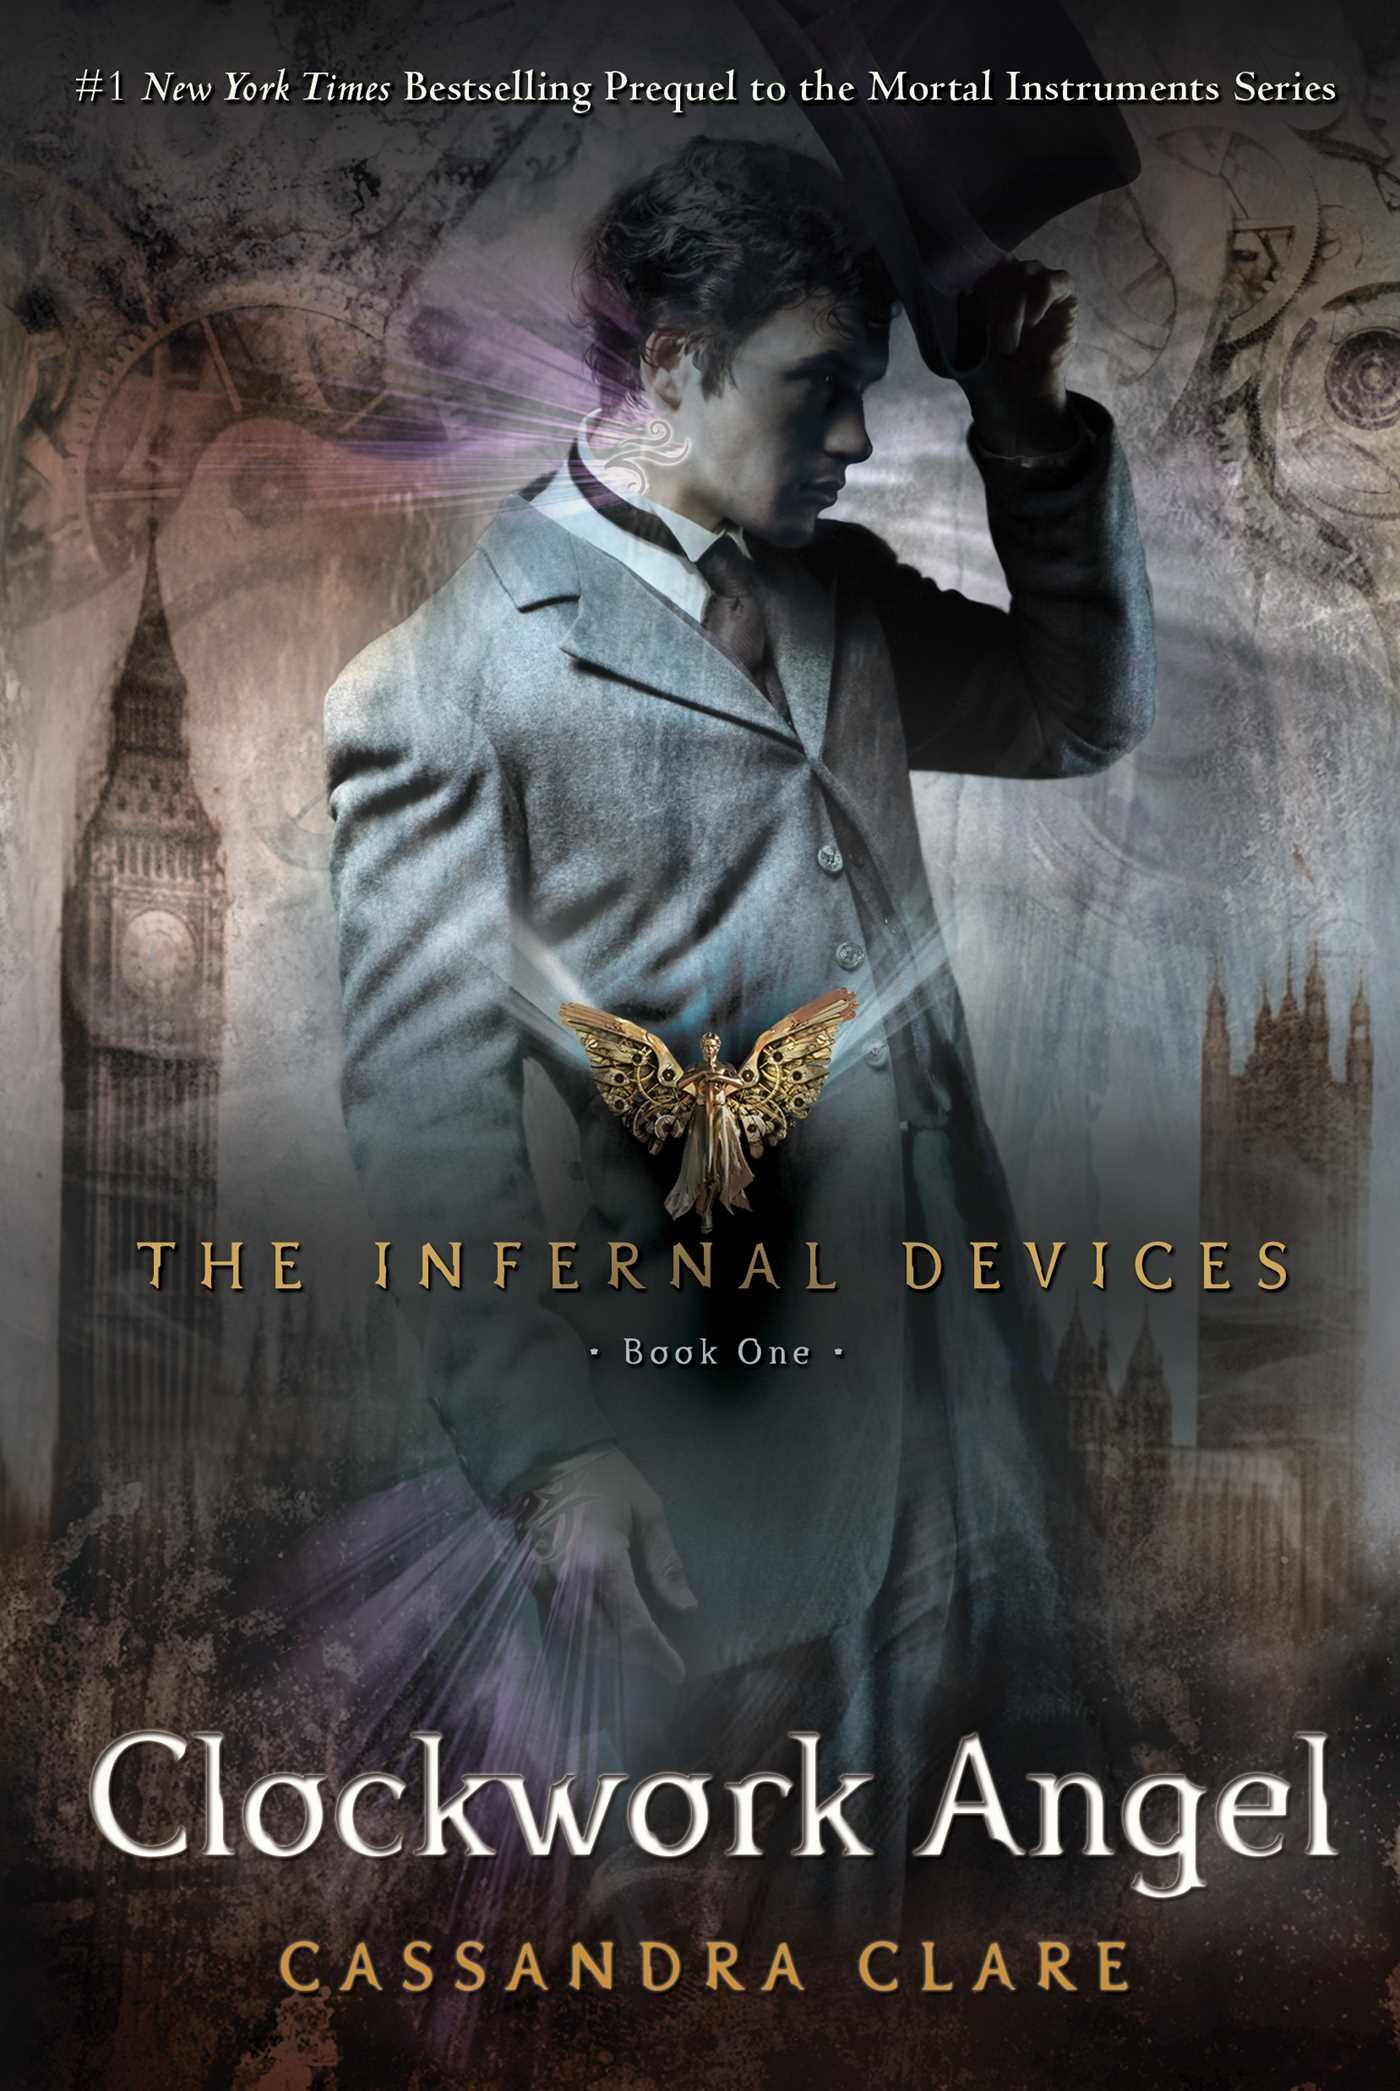 Amazon: Clockwork Angel (infernal Devices, Book 1) (the Infernal Devices)  (9781416975878): Cassandra Clare: Books